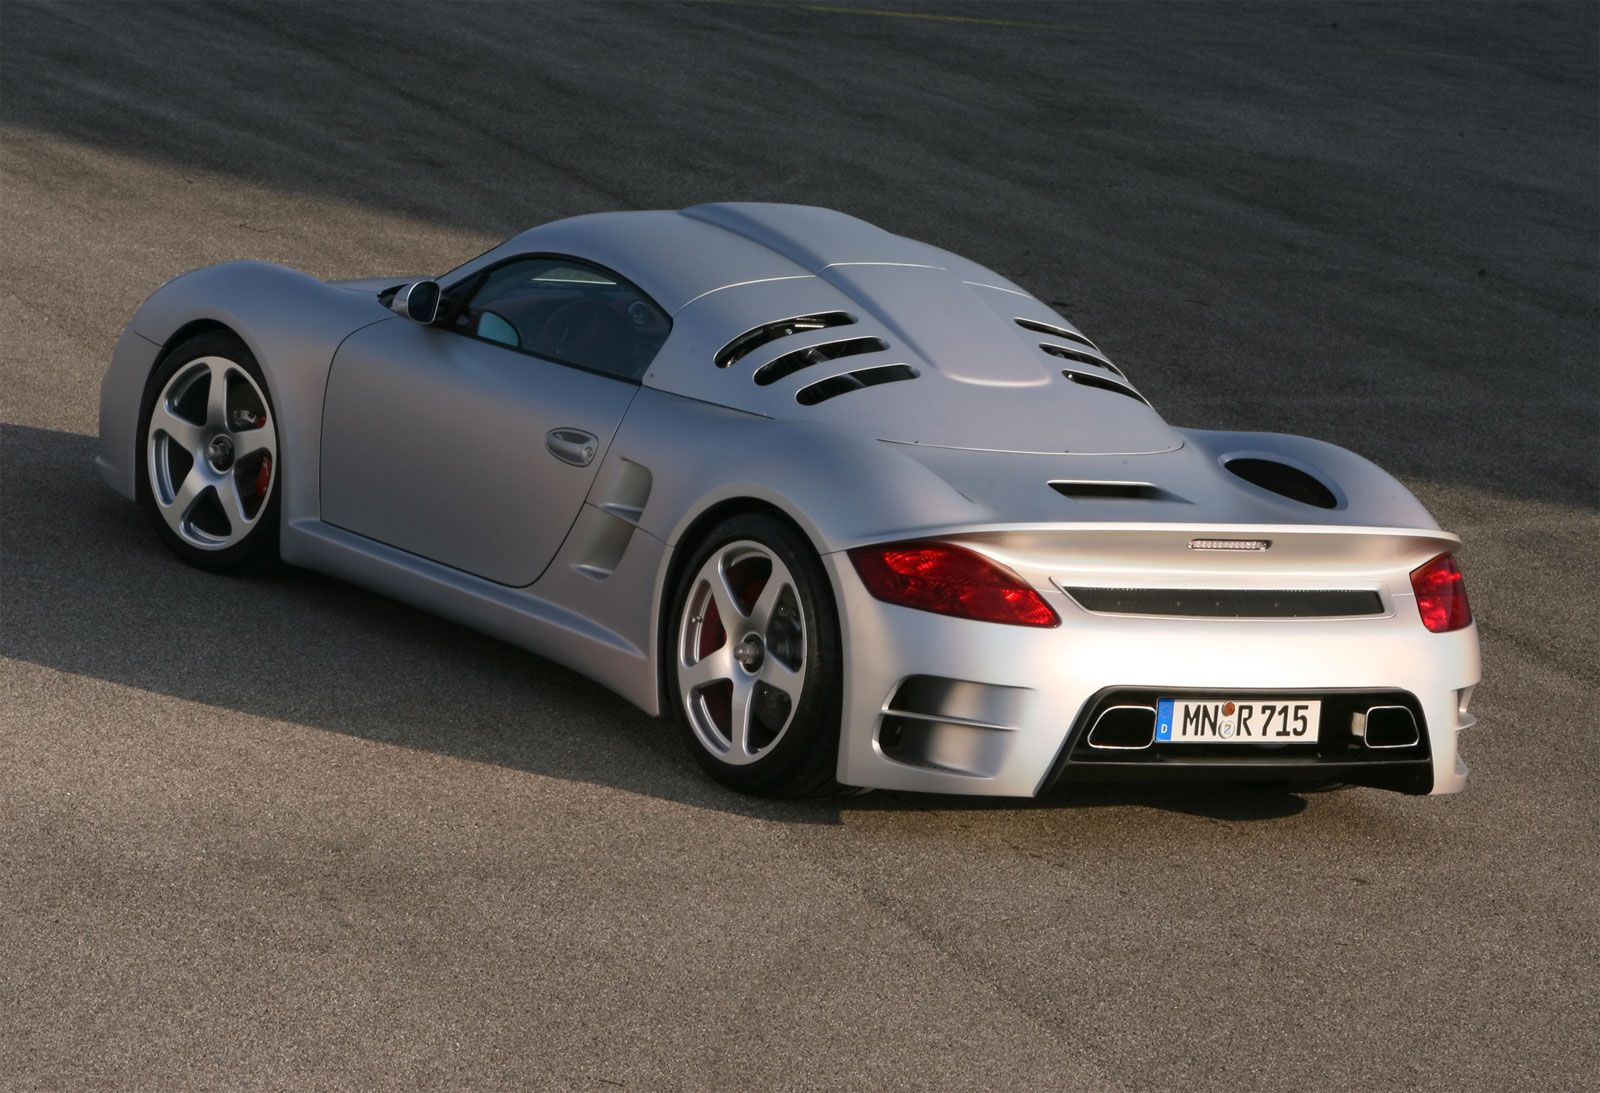 Ralph Lauren Spotted In His Brand New 769 000 Ruf Ctr 3 Clubsport